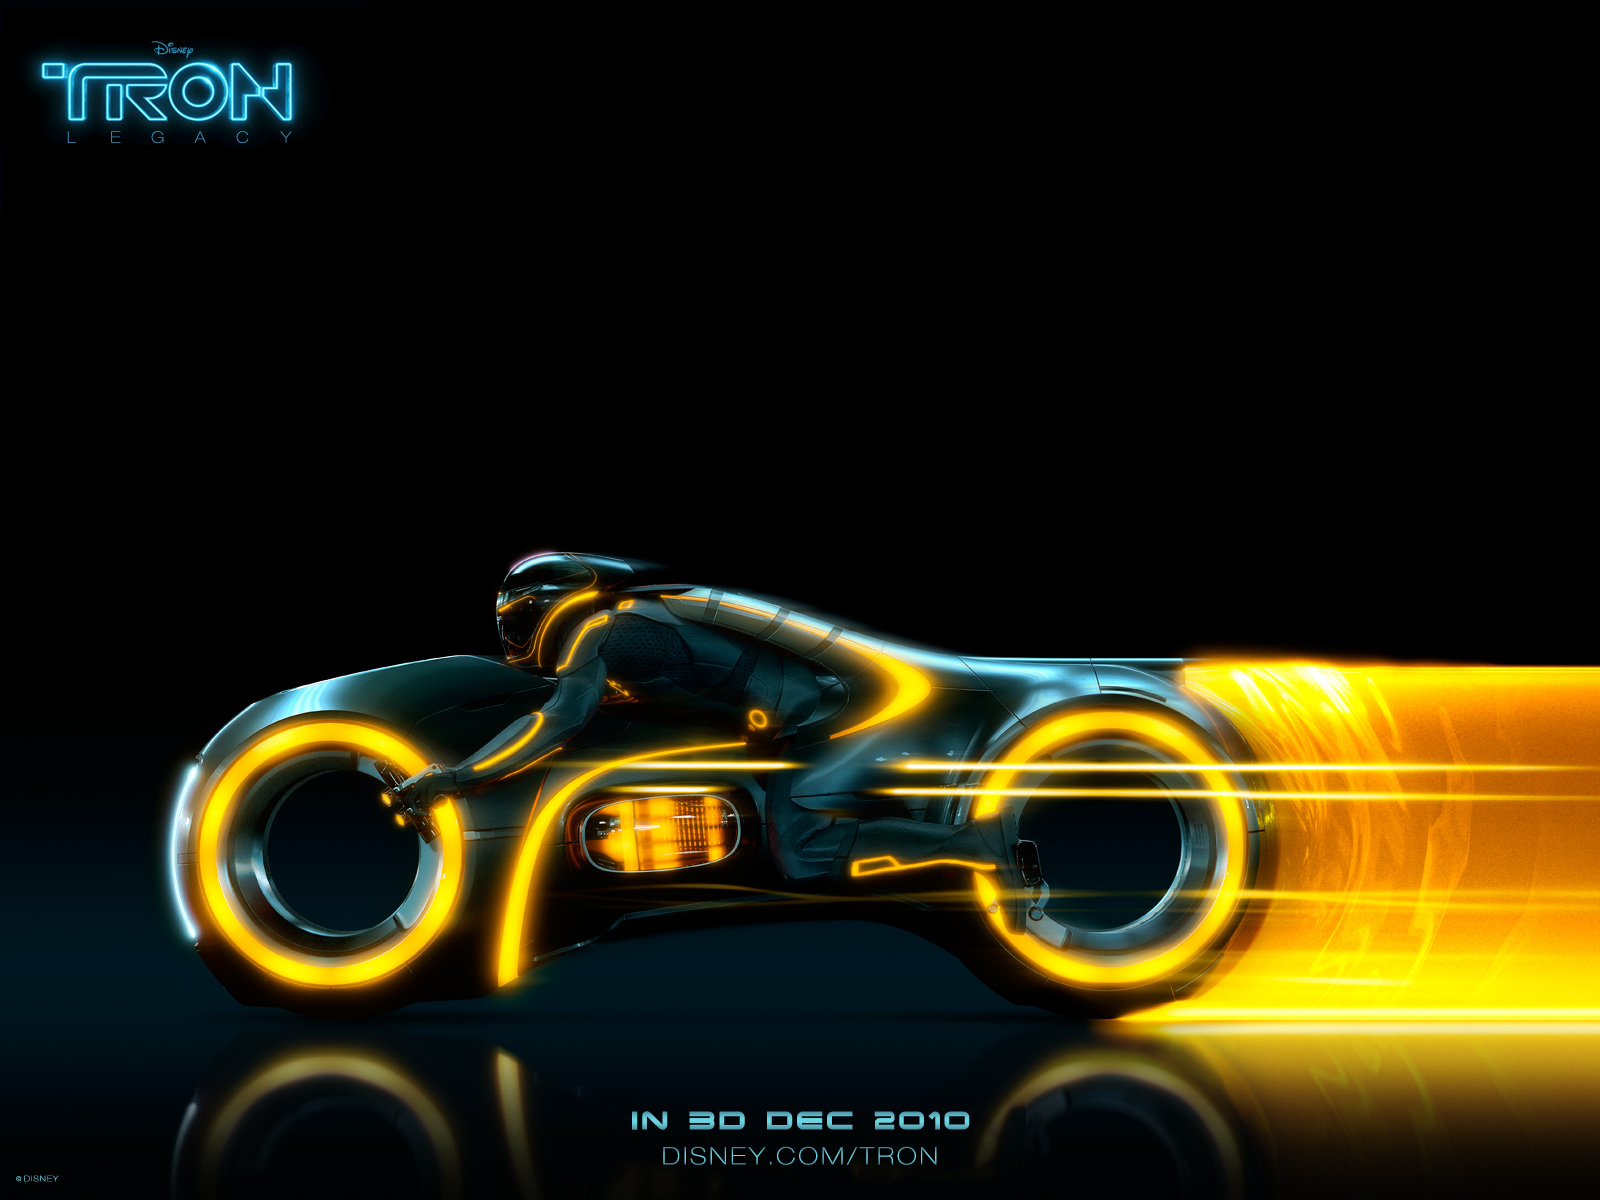 2010 tron evolution wallpapers - photo #45